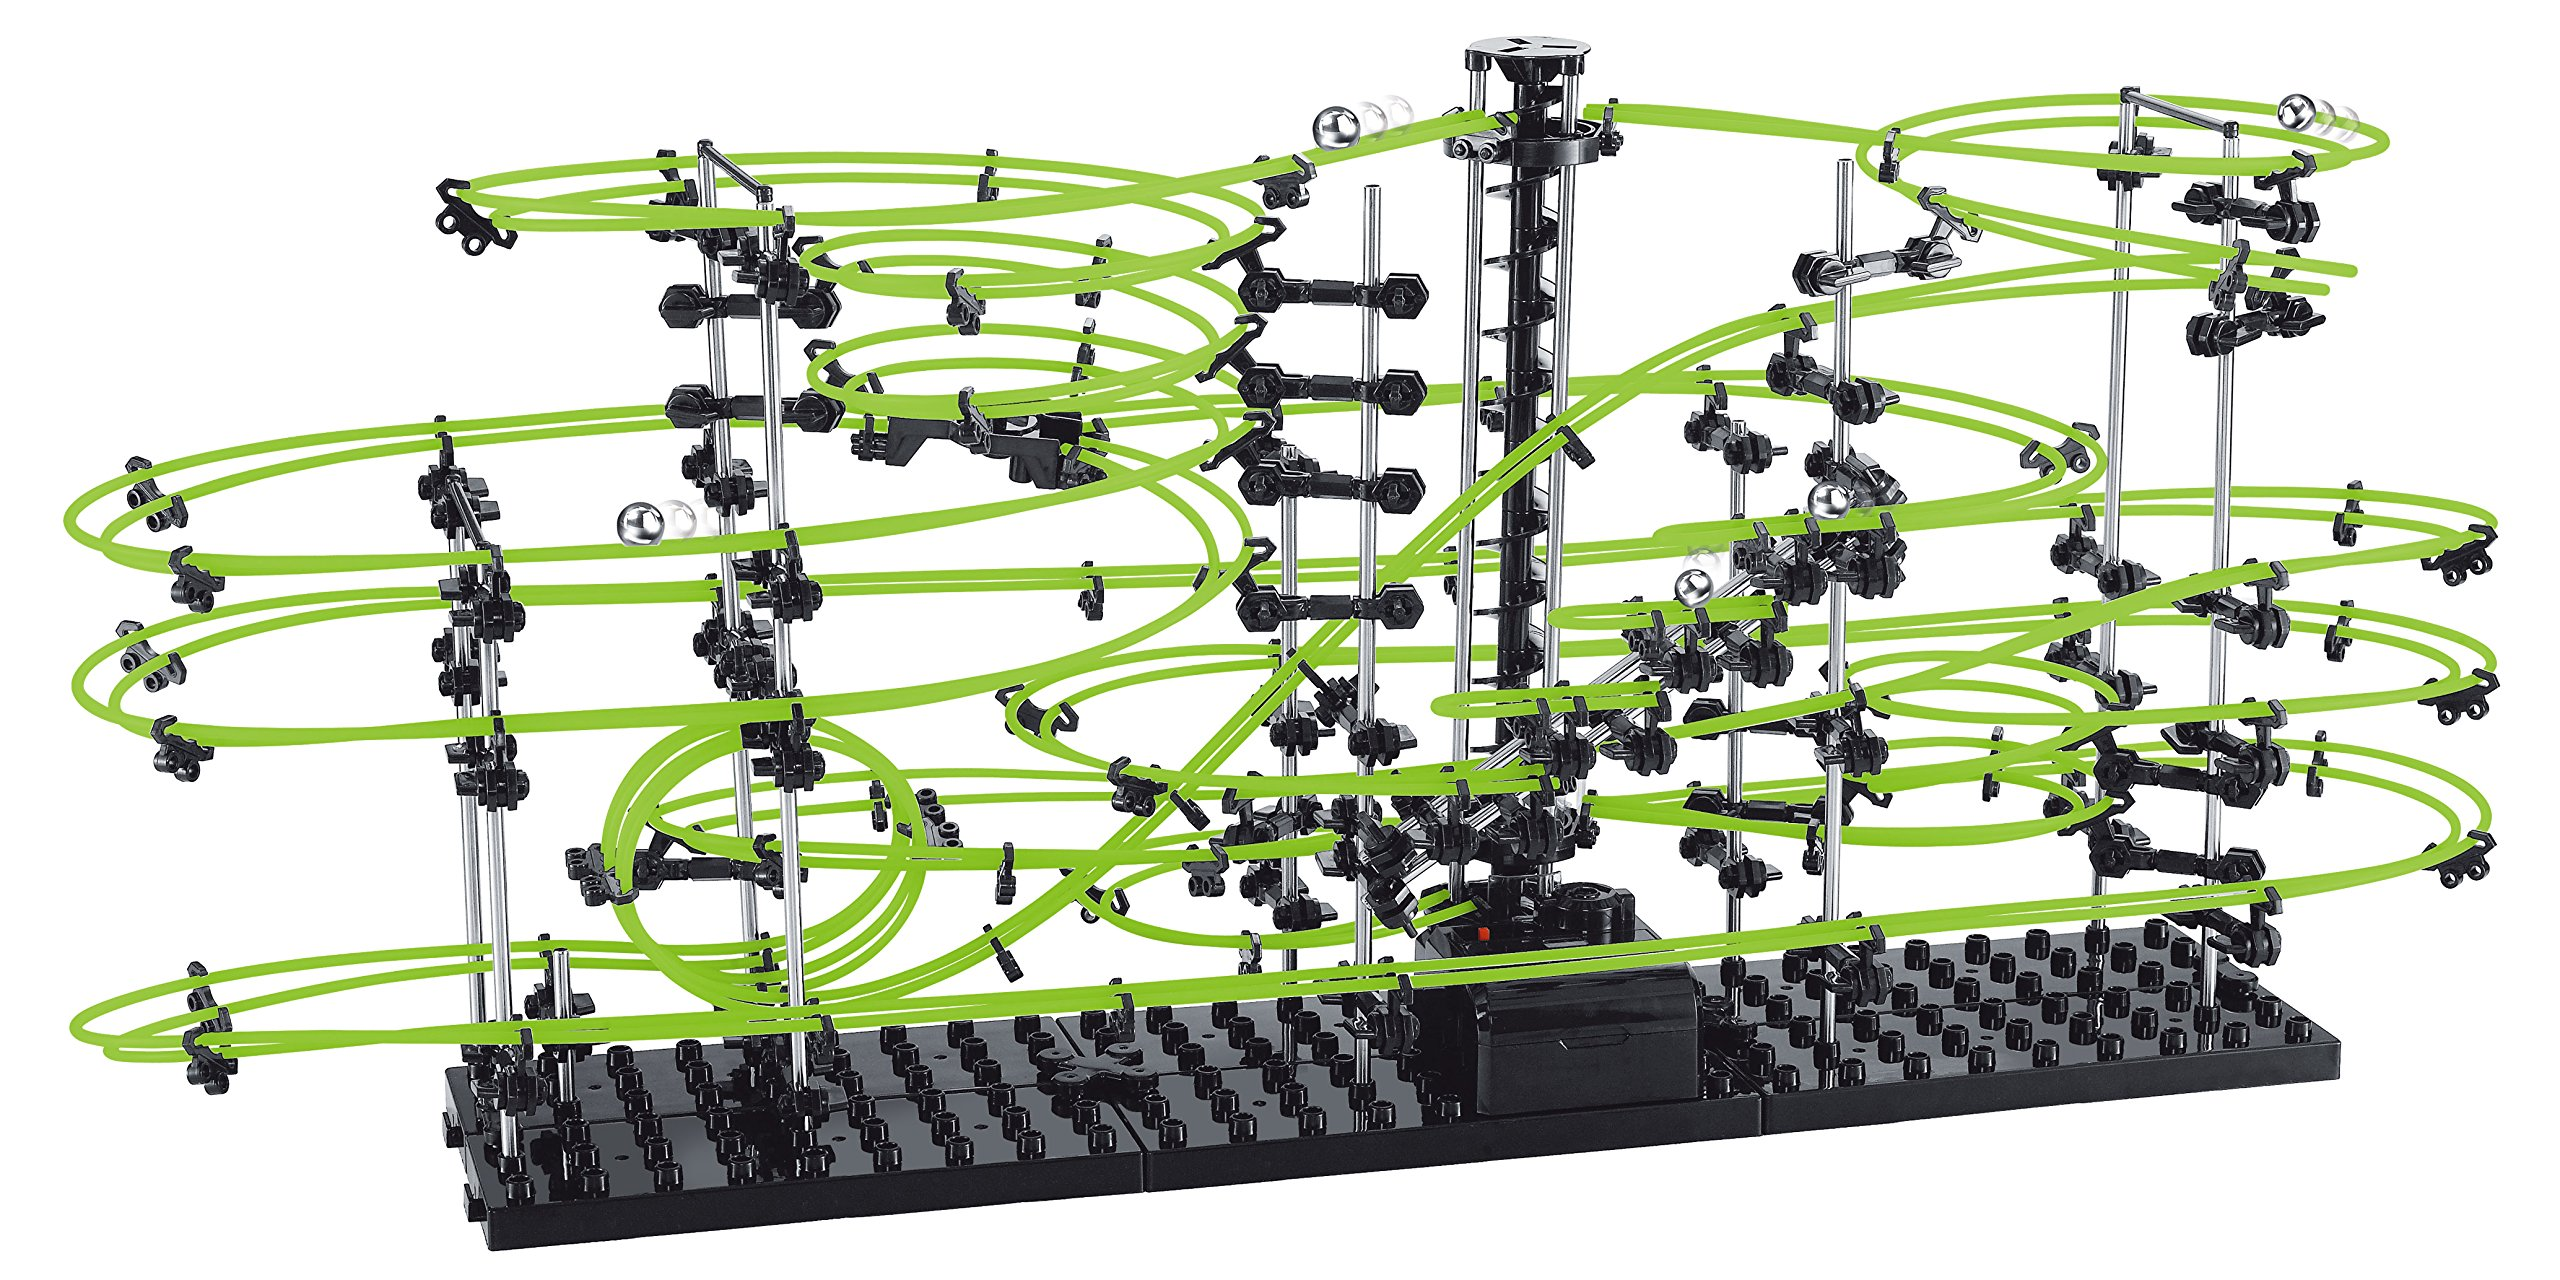 SpaceRail Glow in The Dark 22,000mm Rail, Roller Coaster Building Set, Marble Roller Coaster Kit with Steel Balls, Great Educational Toy for Boys and Girls, Level 4.2